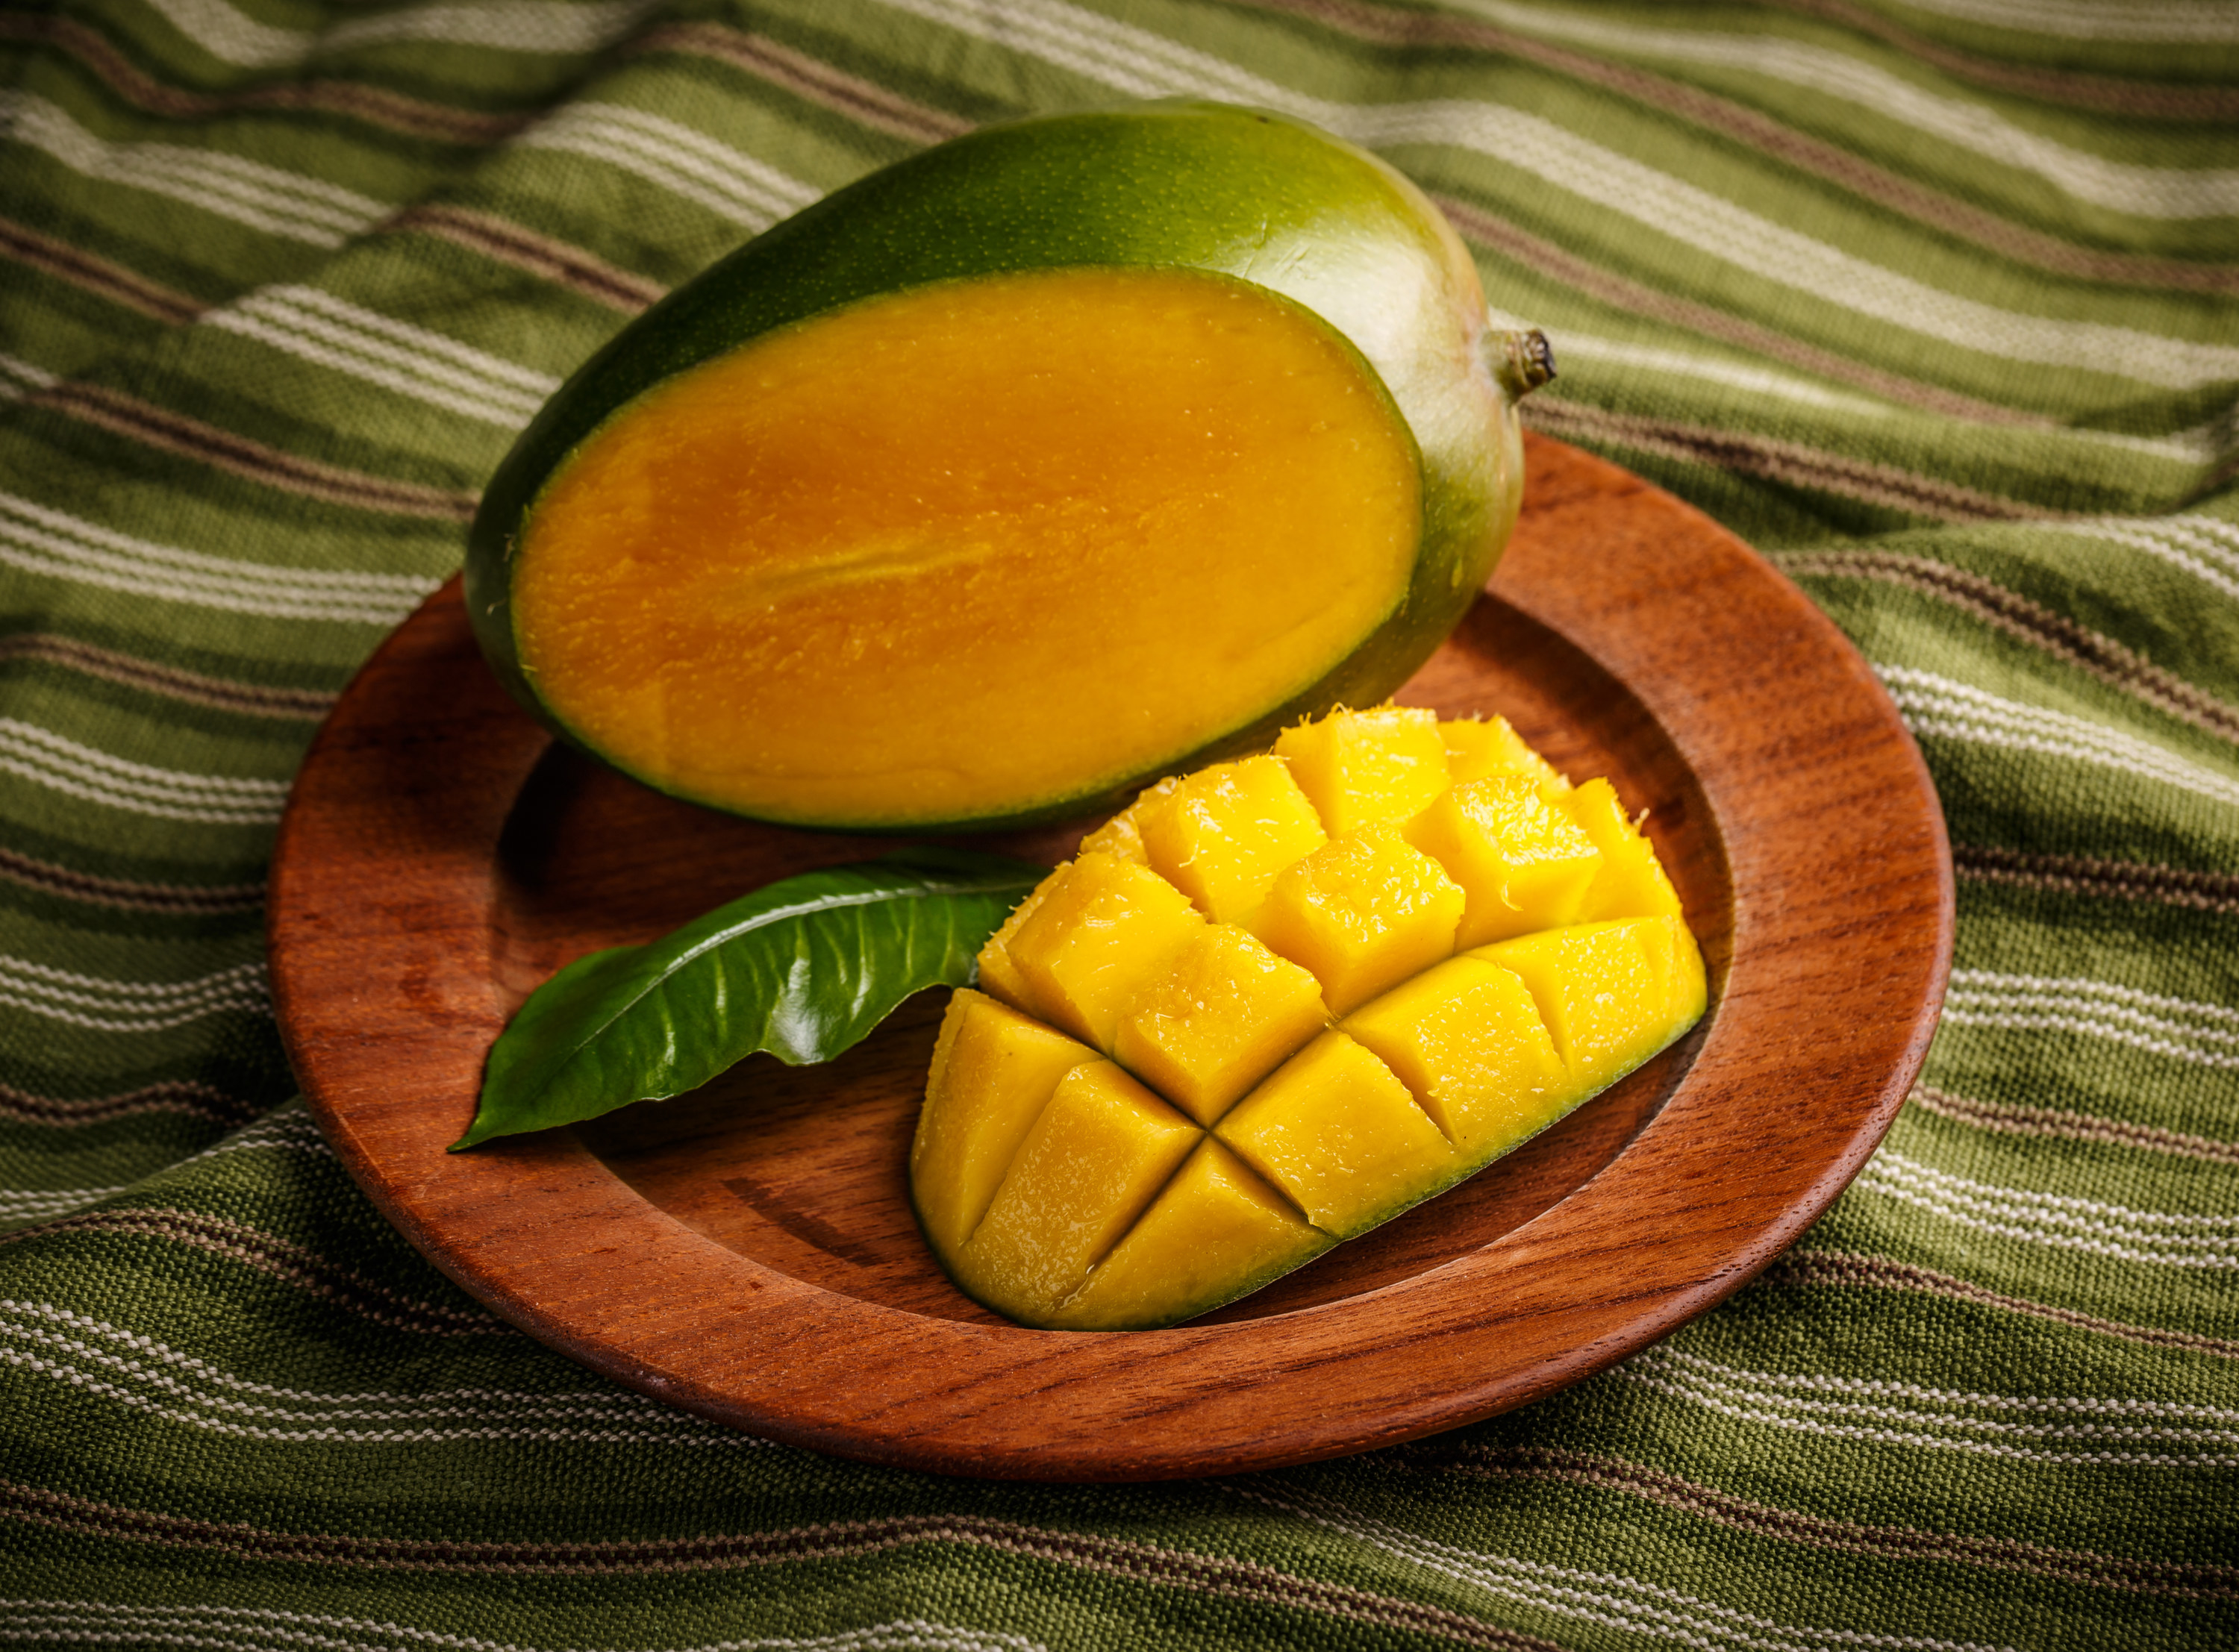 A mango and a green leaf are on a wooden plate. The mango has been sliced open with part of it cut into cubes. Underneath the wooden plate is a green towel with thin dark-green, white, and reddish-brown stripes